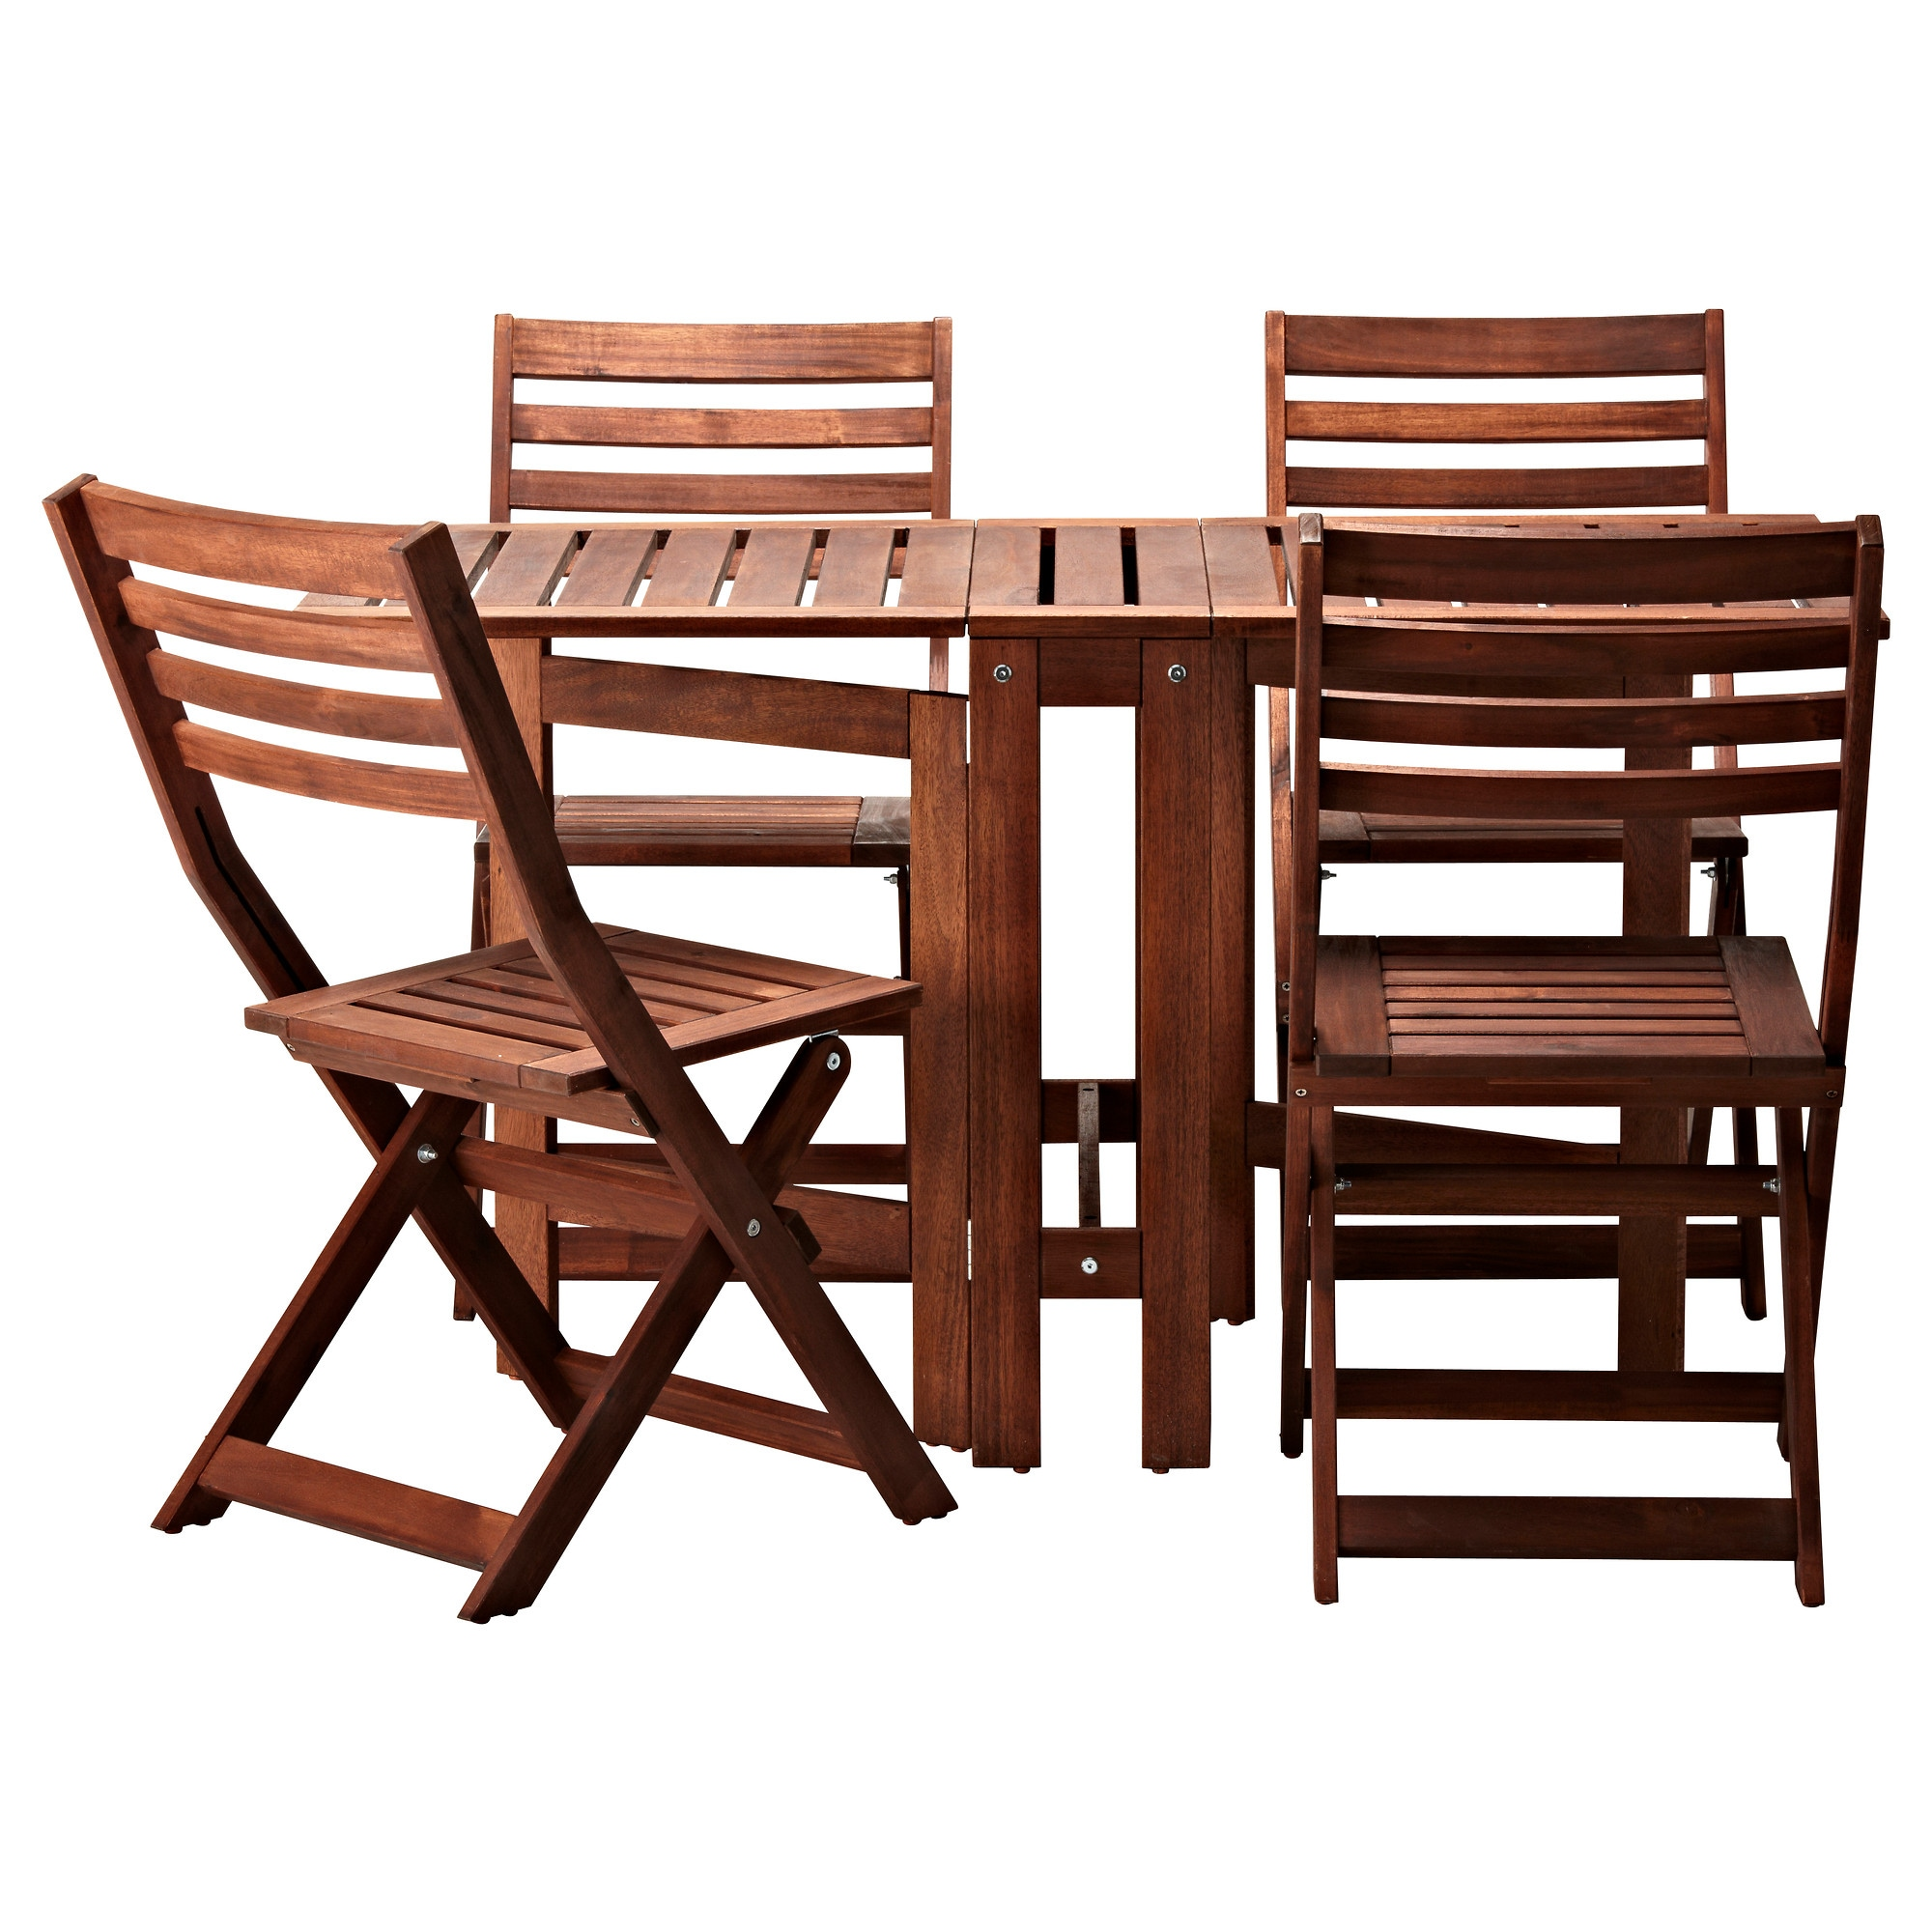 Wood folding chair outdoor -  Pplar Table And 4 Folding Chairs Outdoor Brown Brown Stained